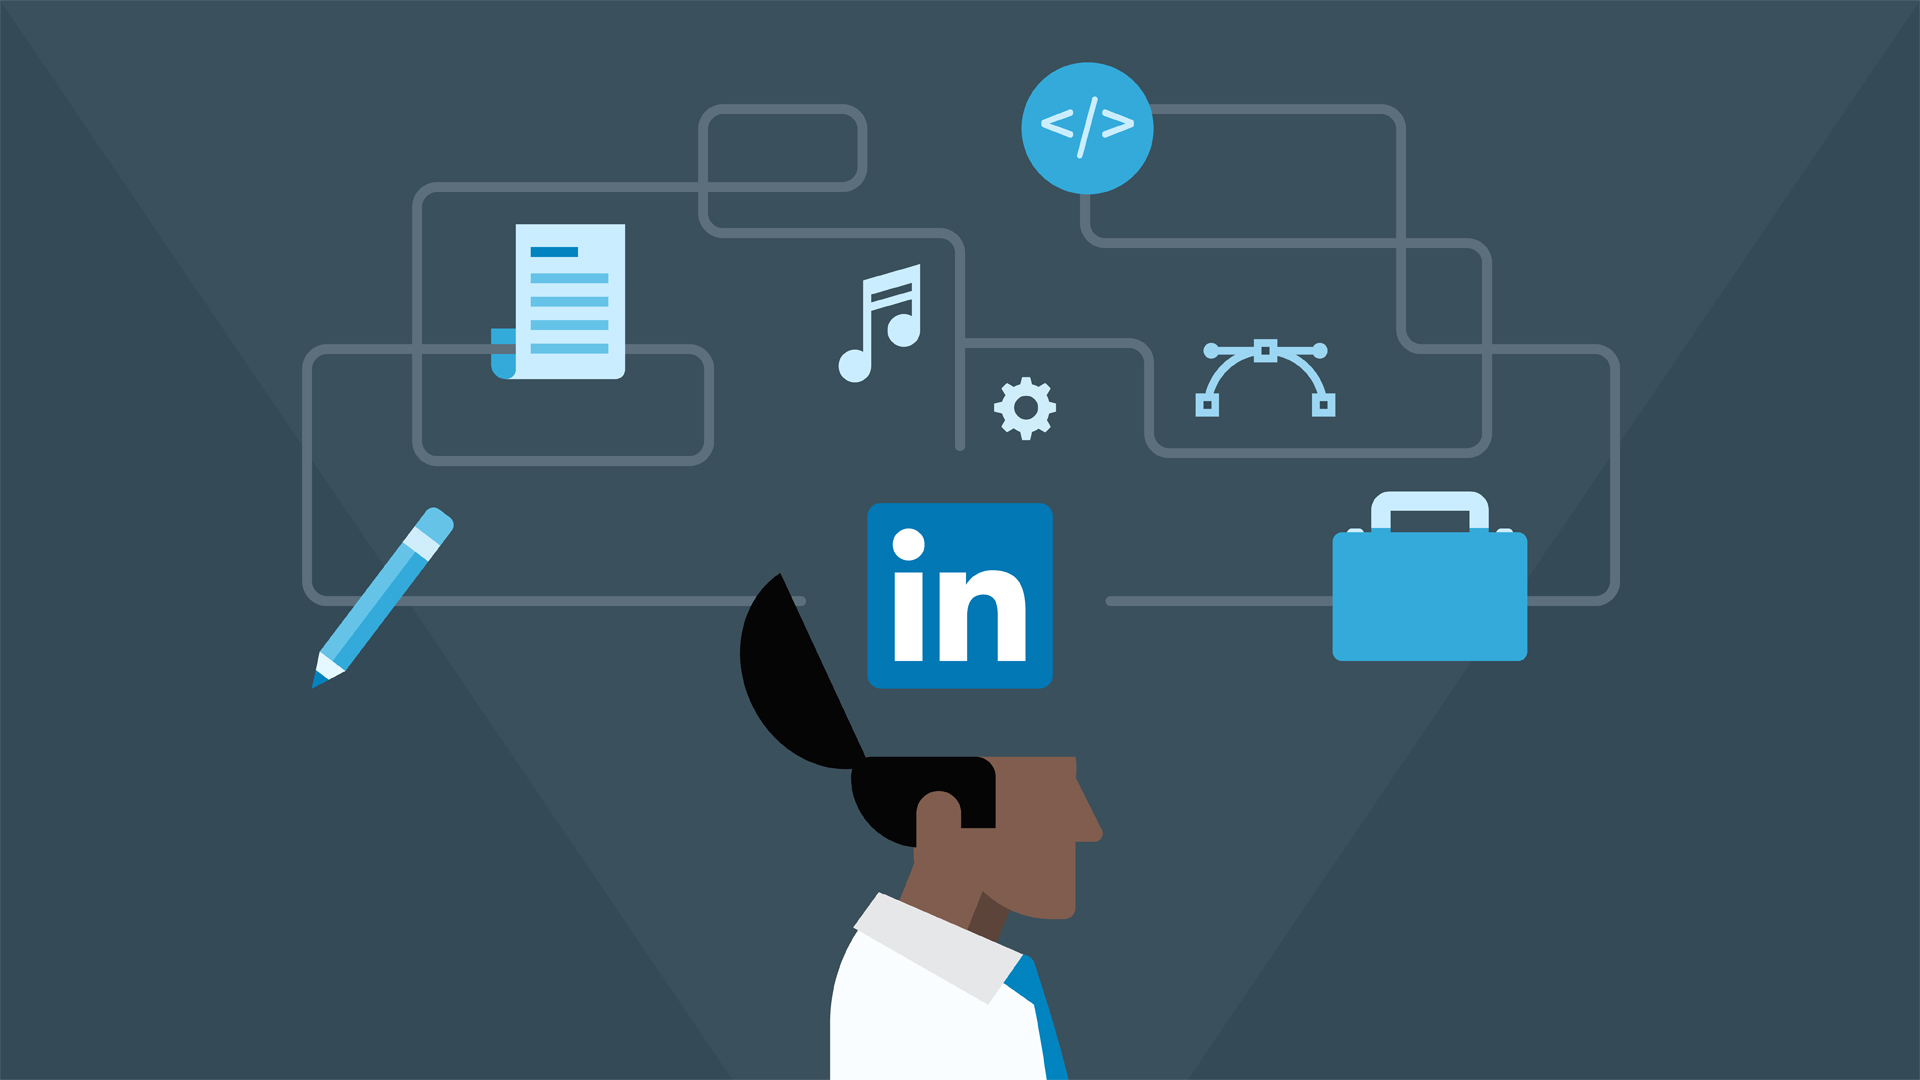 Gaining Skills with LinkedIn Learning